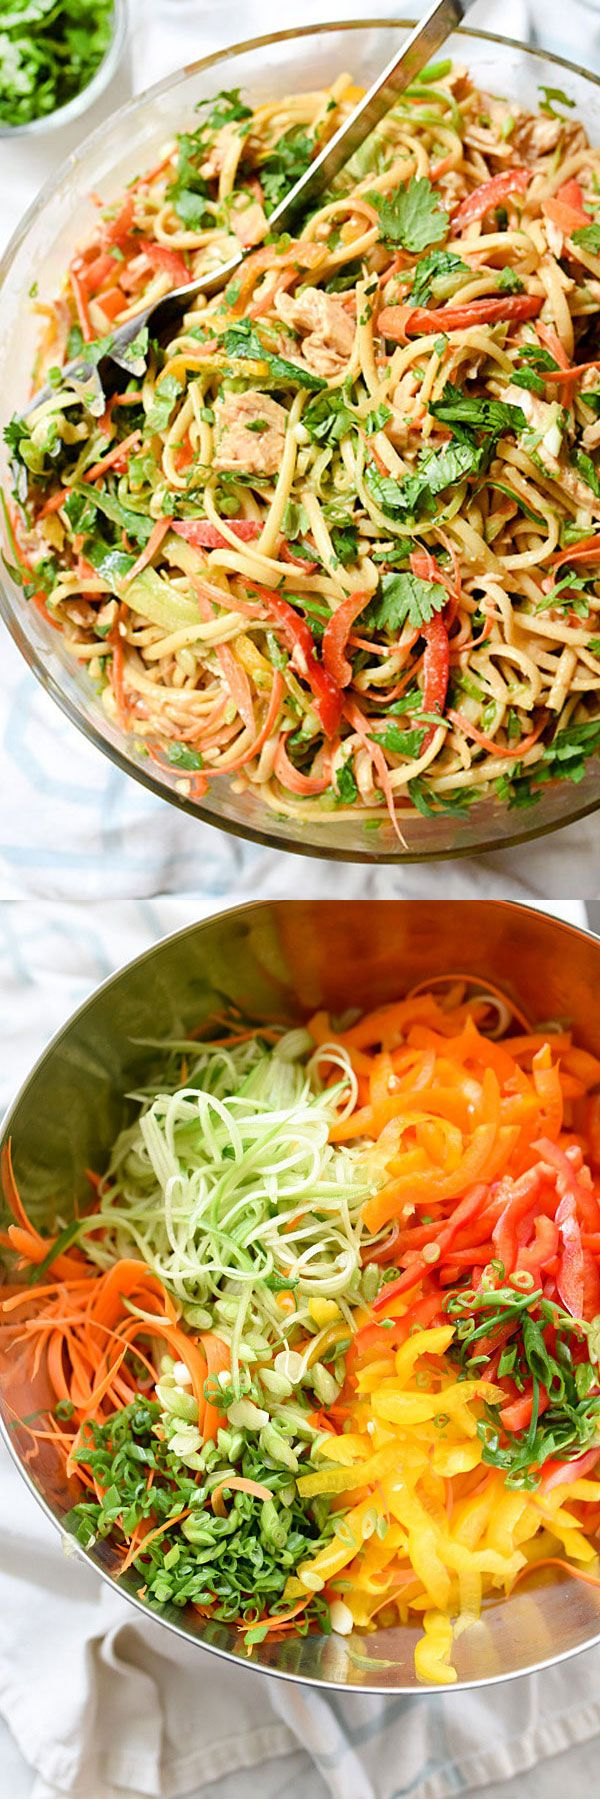 Asian noodle salad peanut sauce part